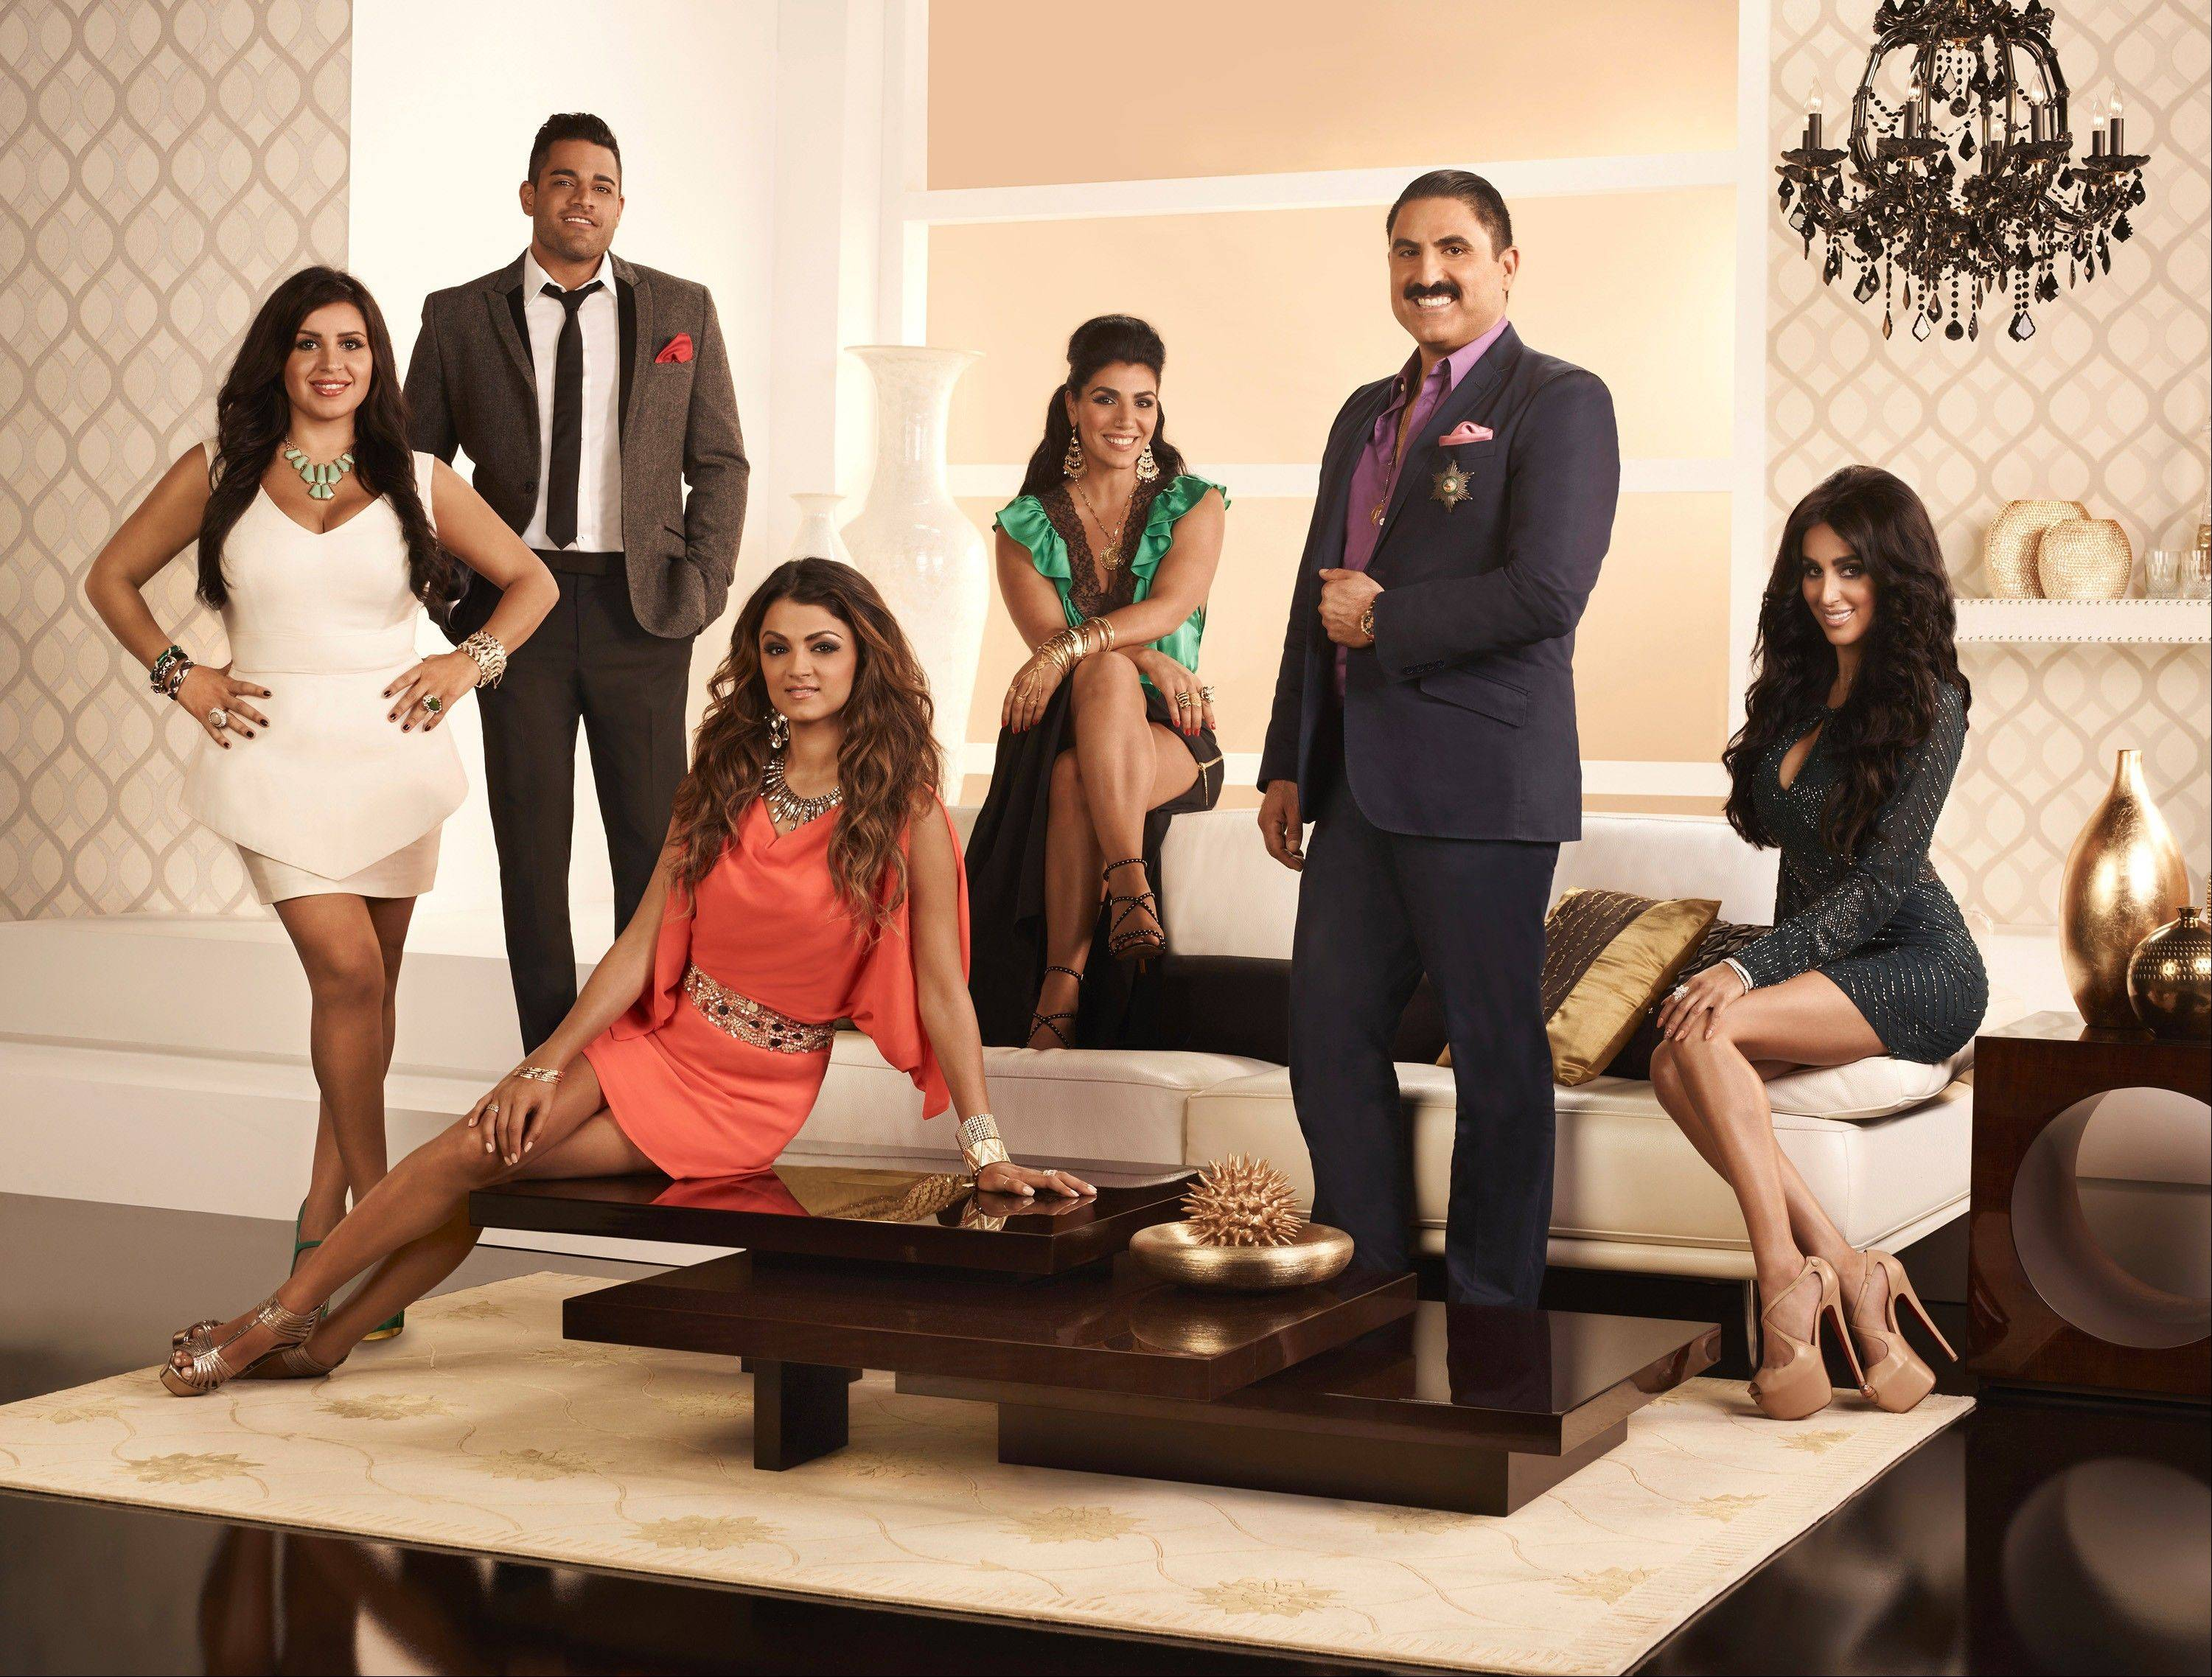 Bravo�s �Shahs of Sunset� follows a group of young Iranian-Americans living in L.A. Featured are Mercedes �MJ� Javid, left, Mike Shouhed, Golnesa �GG� Gharachedaghi, Asa Soltan Rahmati, Reza Farahan and new cast member Lilly Ghalichi.